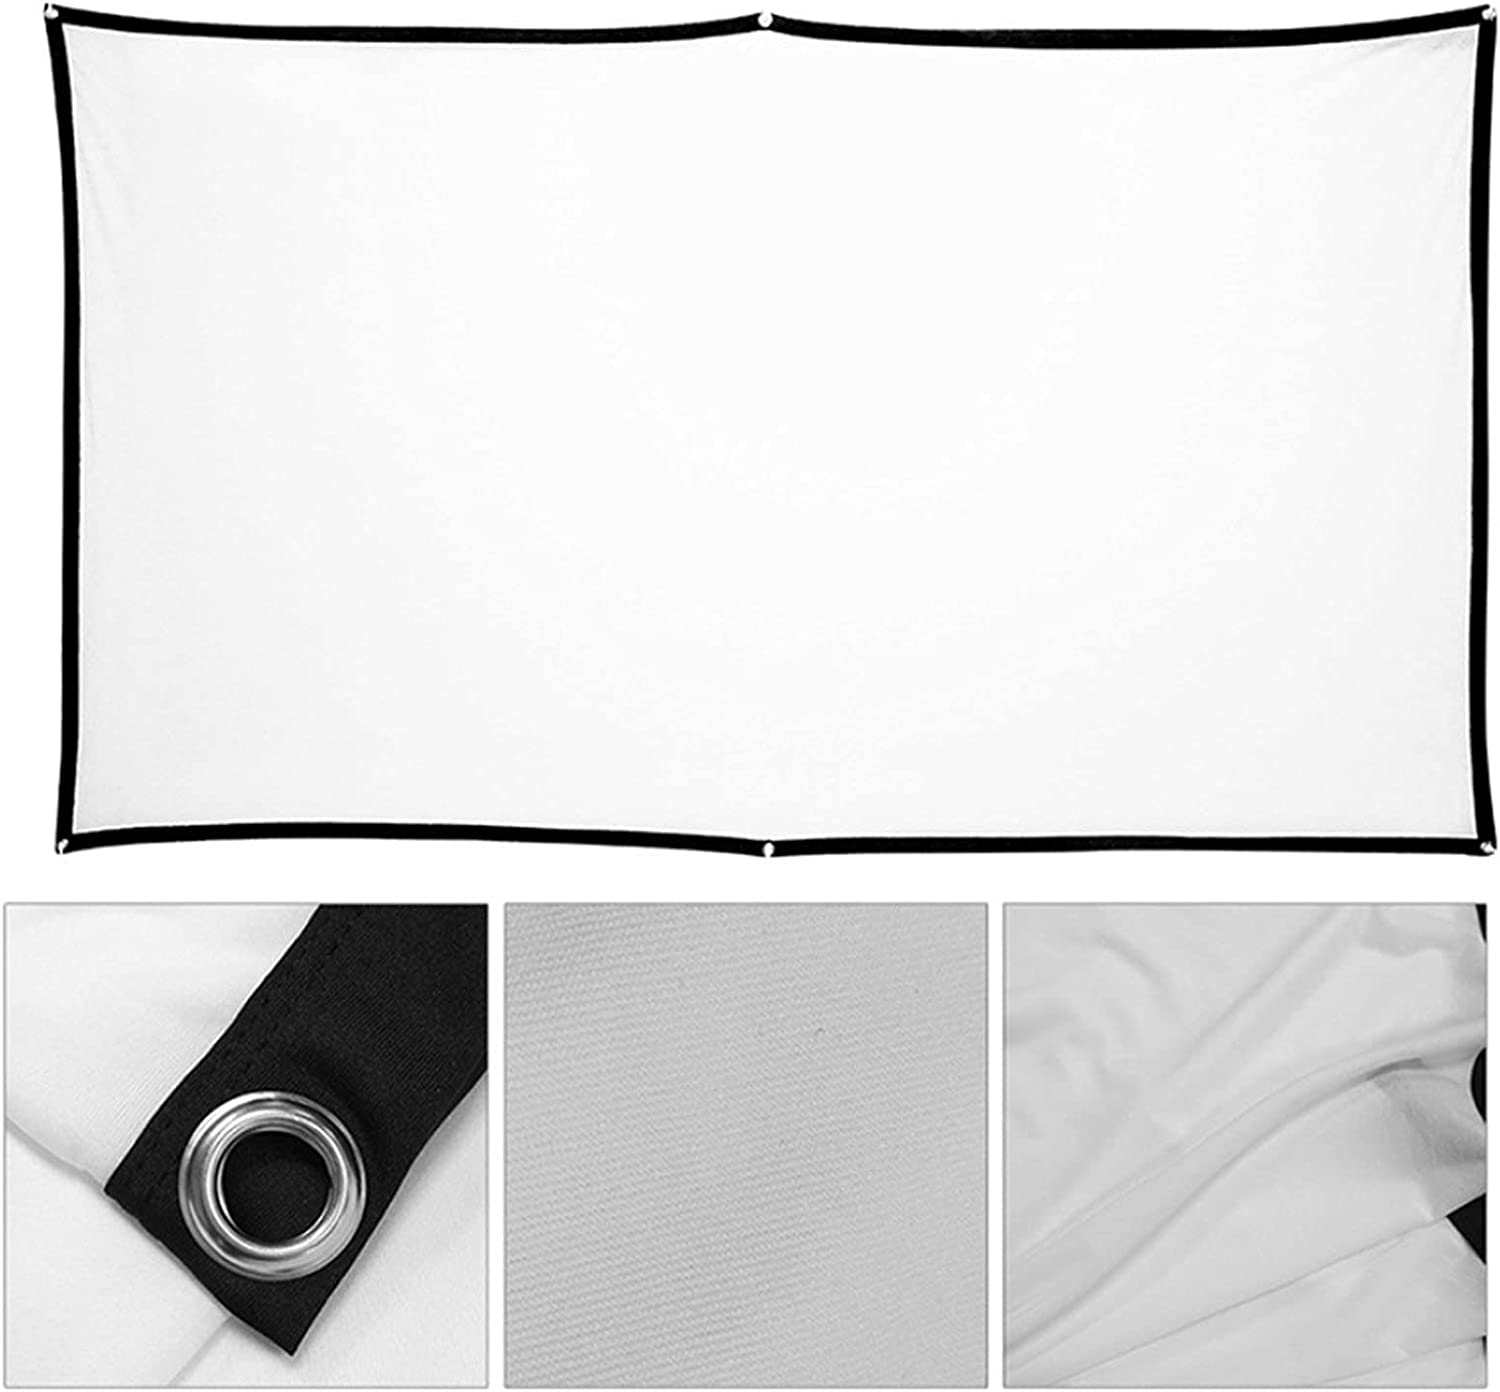 Bulaxxooo Projection Screen, 100Inch Foldable Anti-Crease Portable Projection Movies Screen for Indoor Outdoor Home Office Theater Video Film